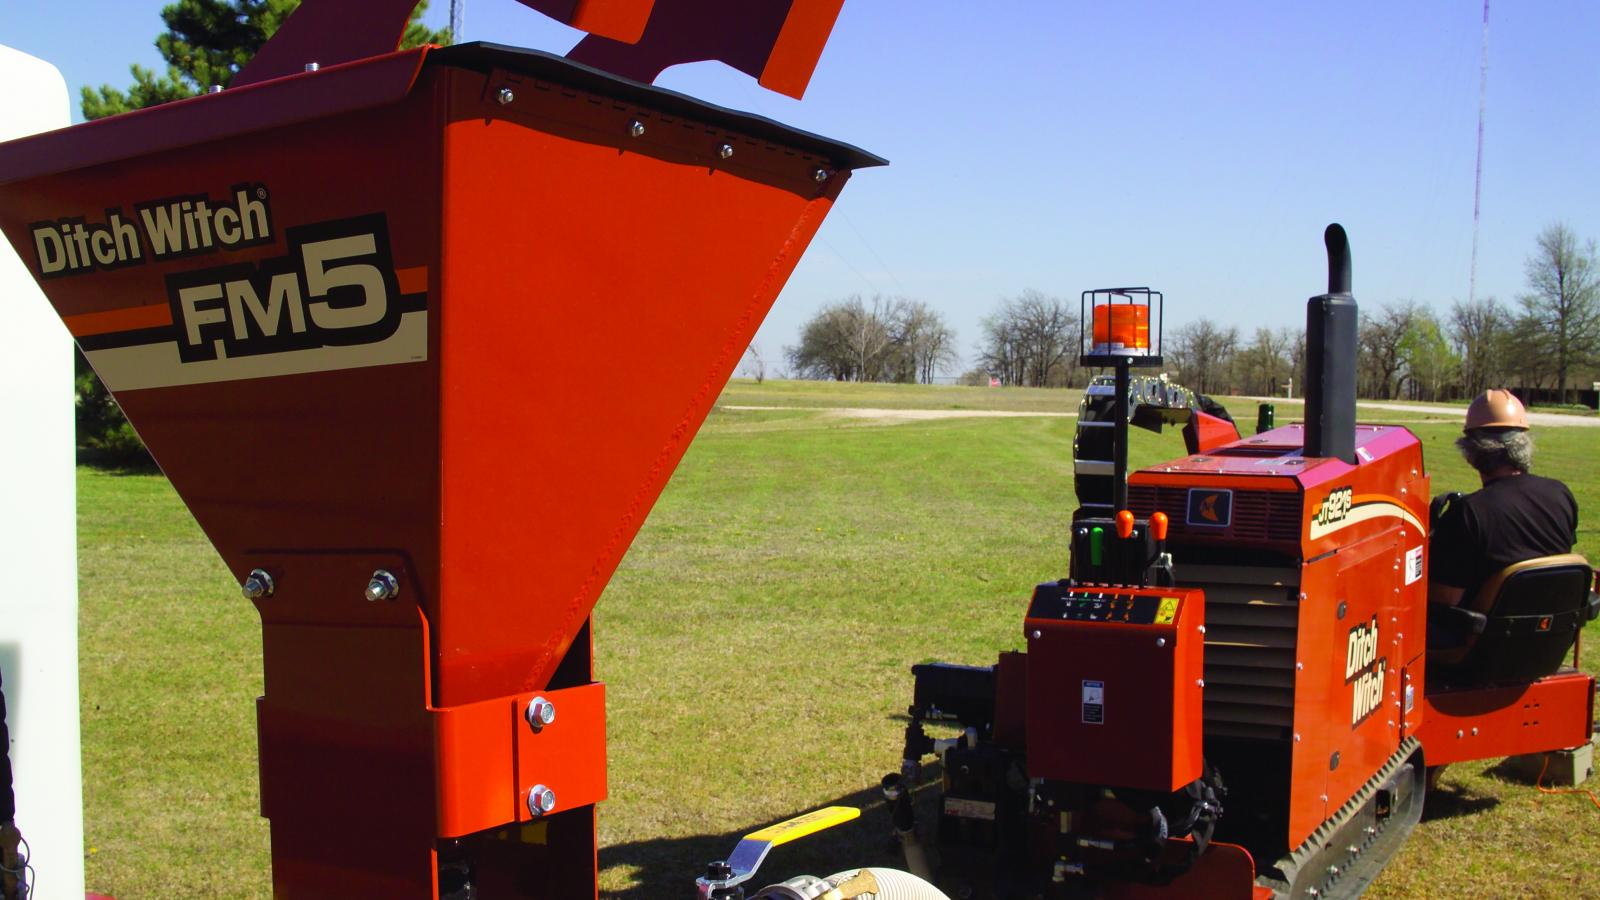 Ditch Witch FM5 Fluid Management